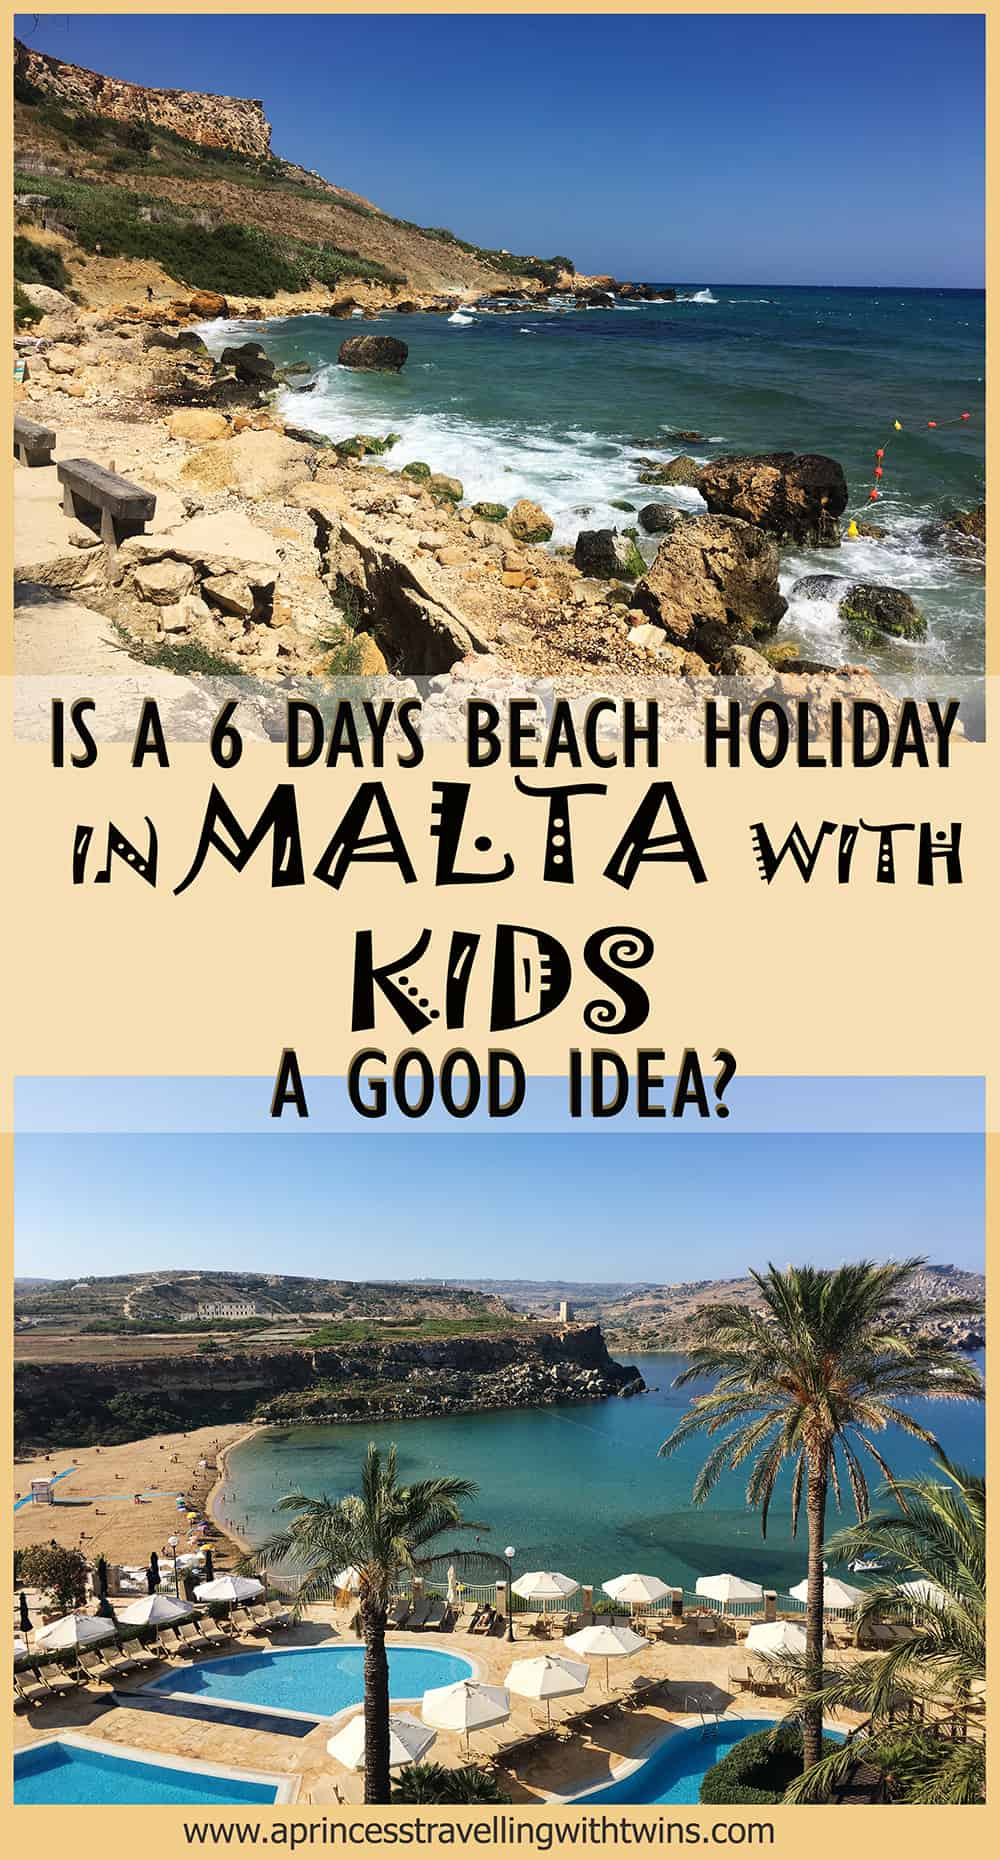 Is a 6 days beach holiday in Malta with kids a good idea?